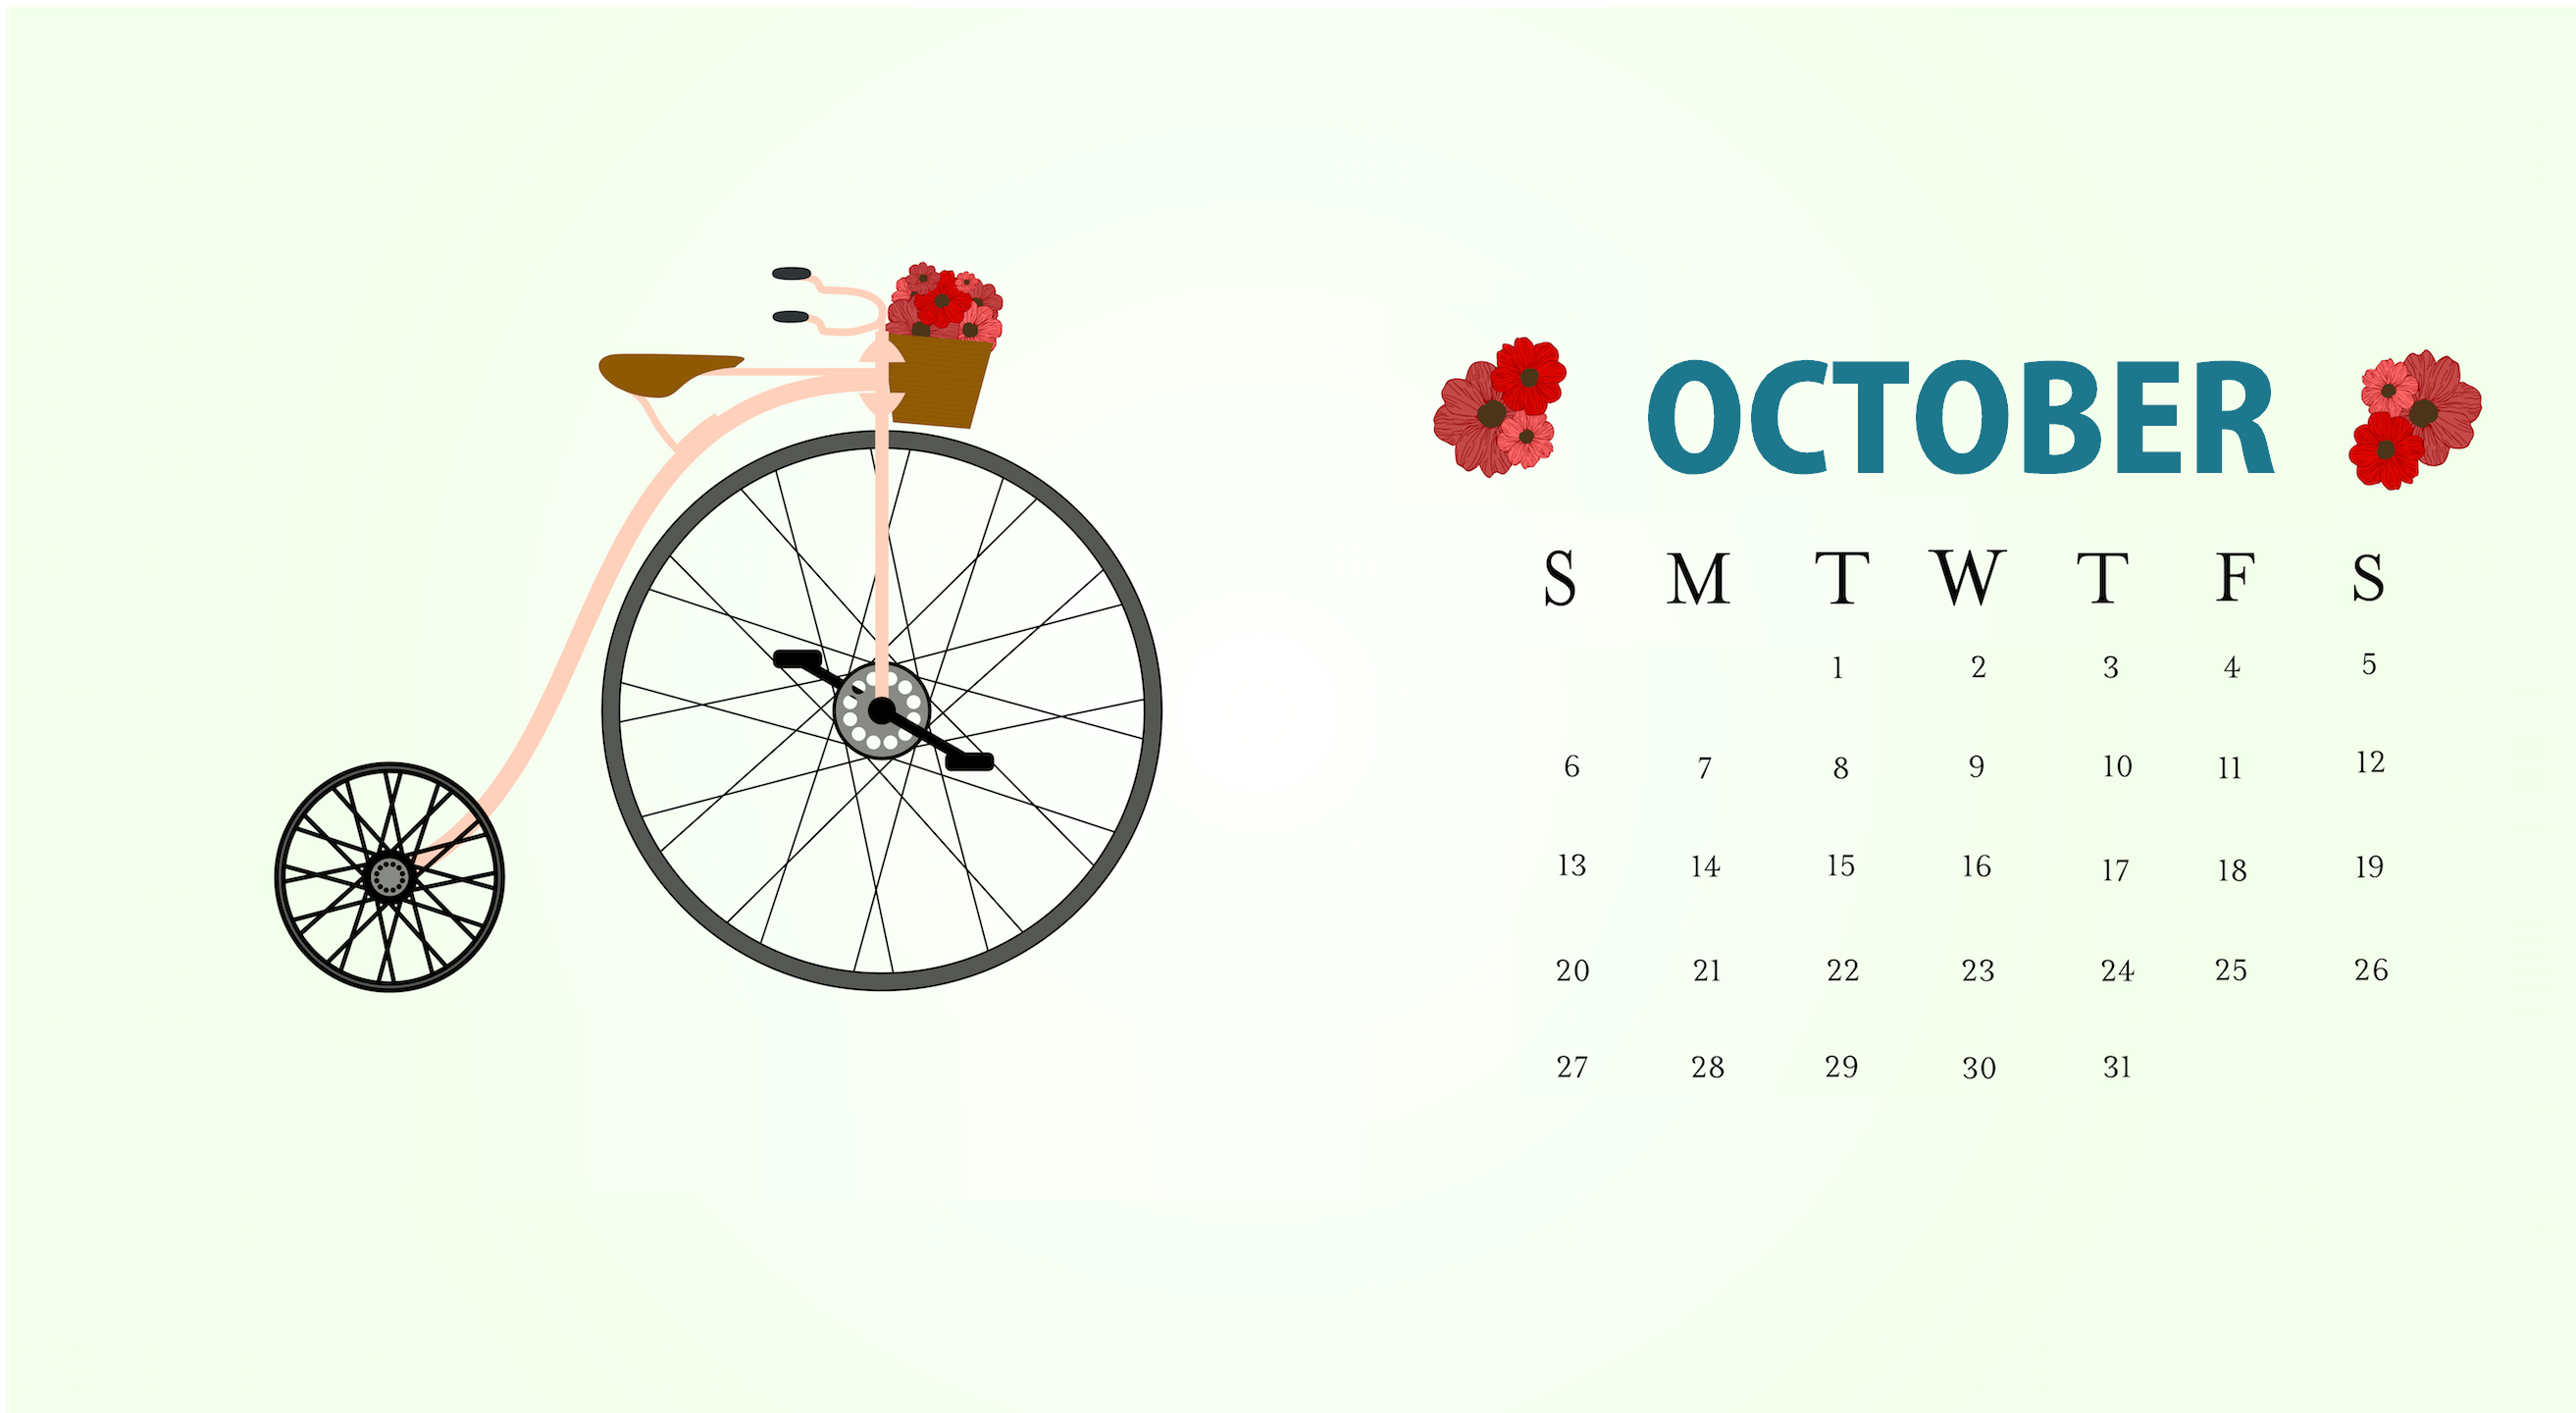 10 October 2020 Calendar Plant Floral Cute Desktop Wallpaper In 2020 Desktop Wallpaper Calendar Calendar Wallpaper Desktop Calendar